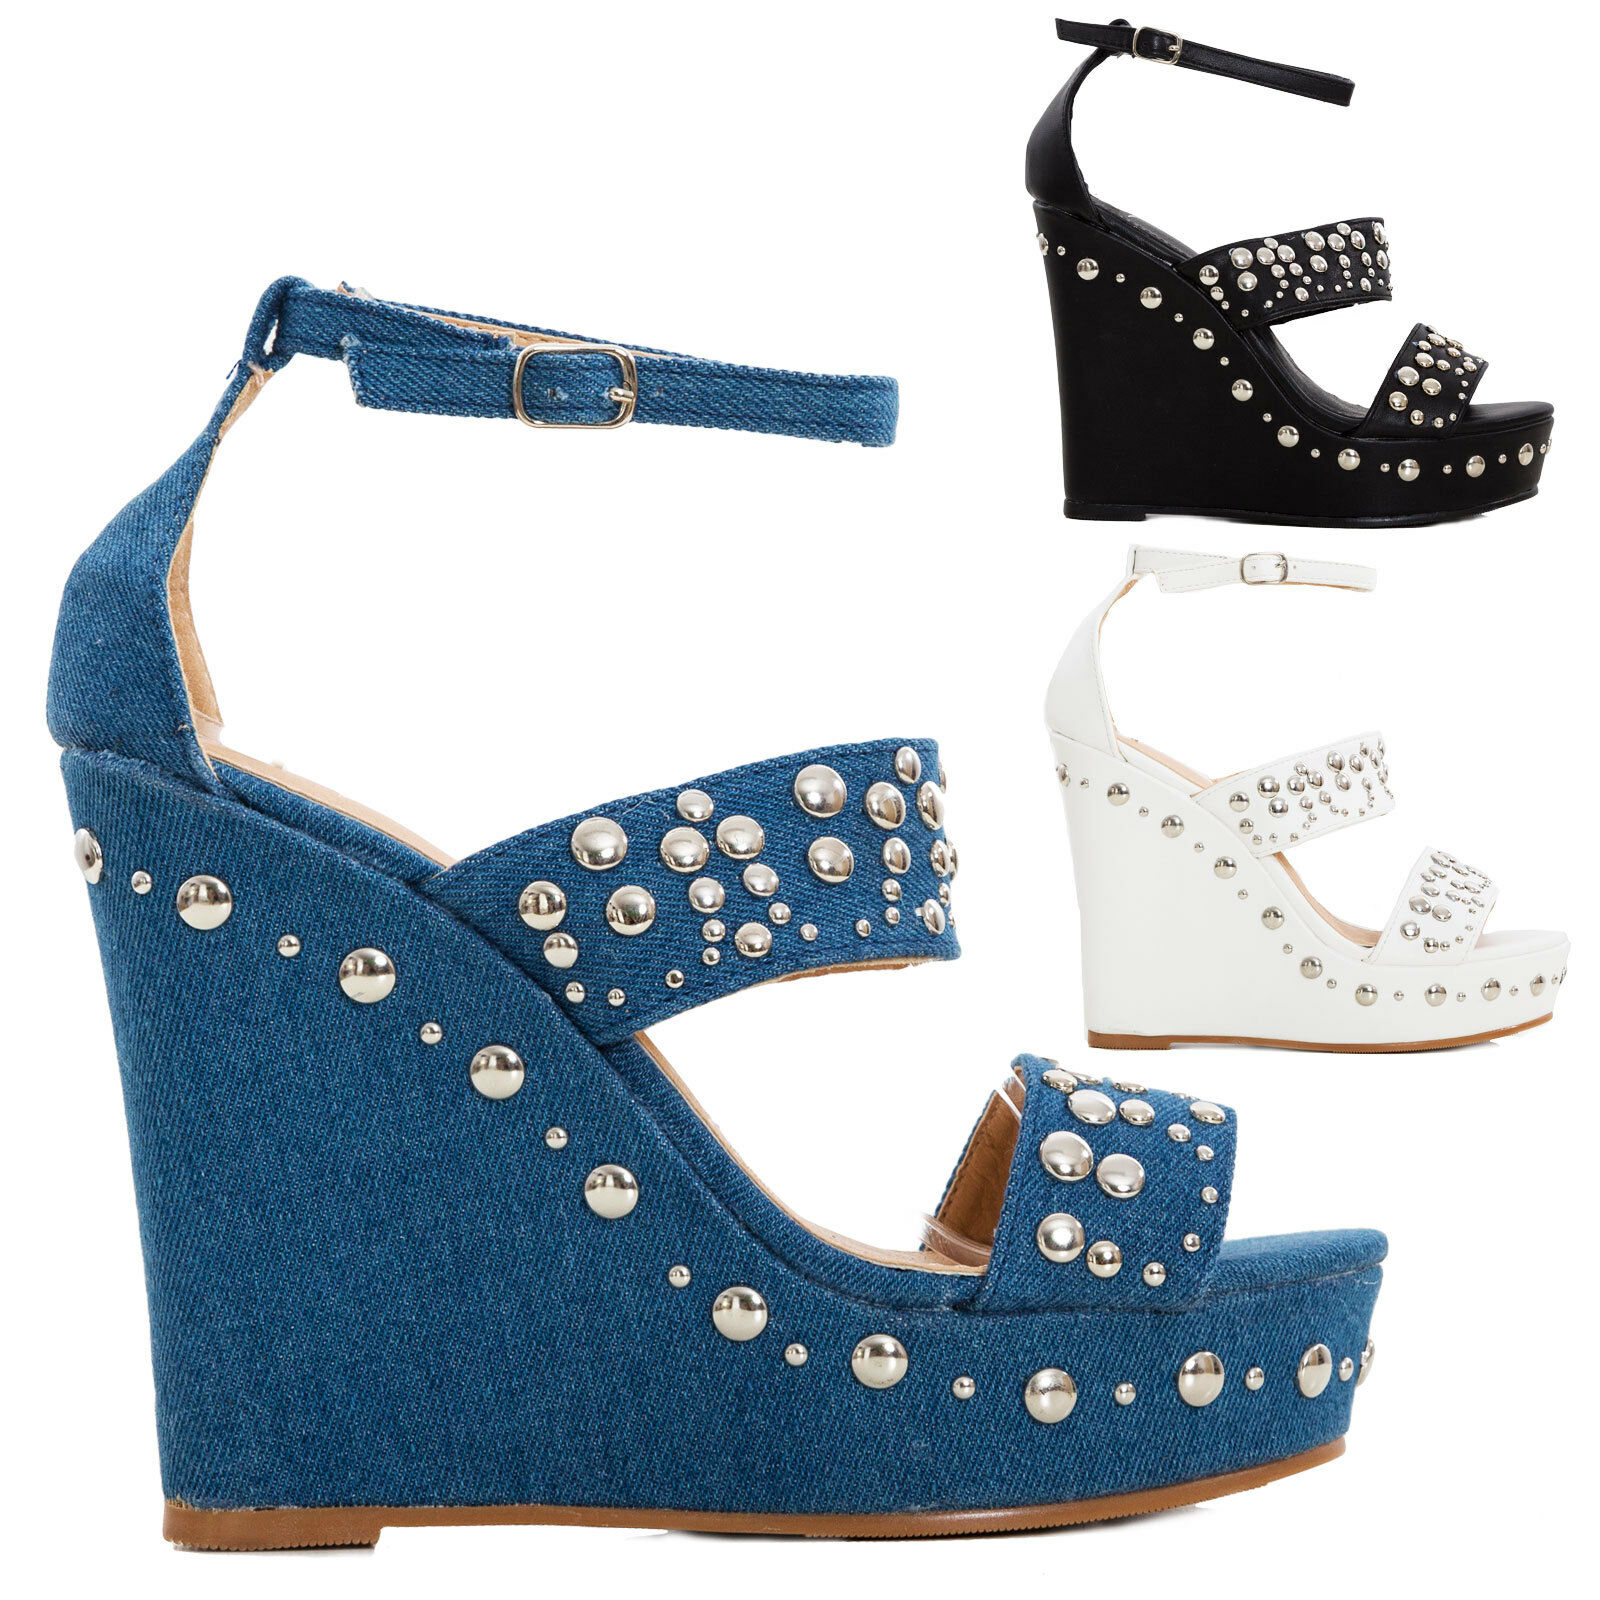 Women's shoes wedges big wedges studs sandals strap eco-leather high heel KM005